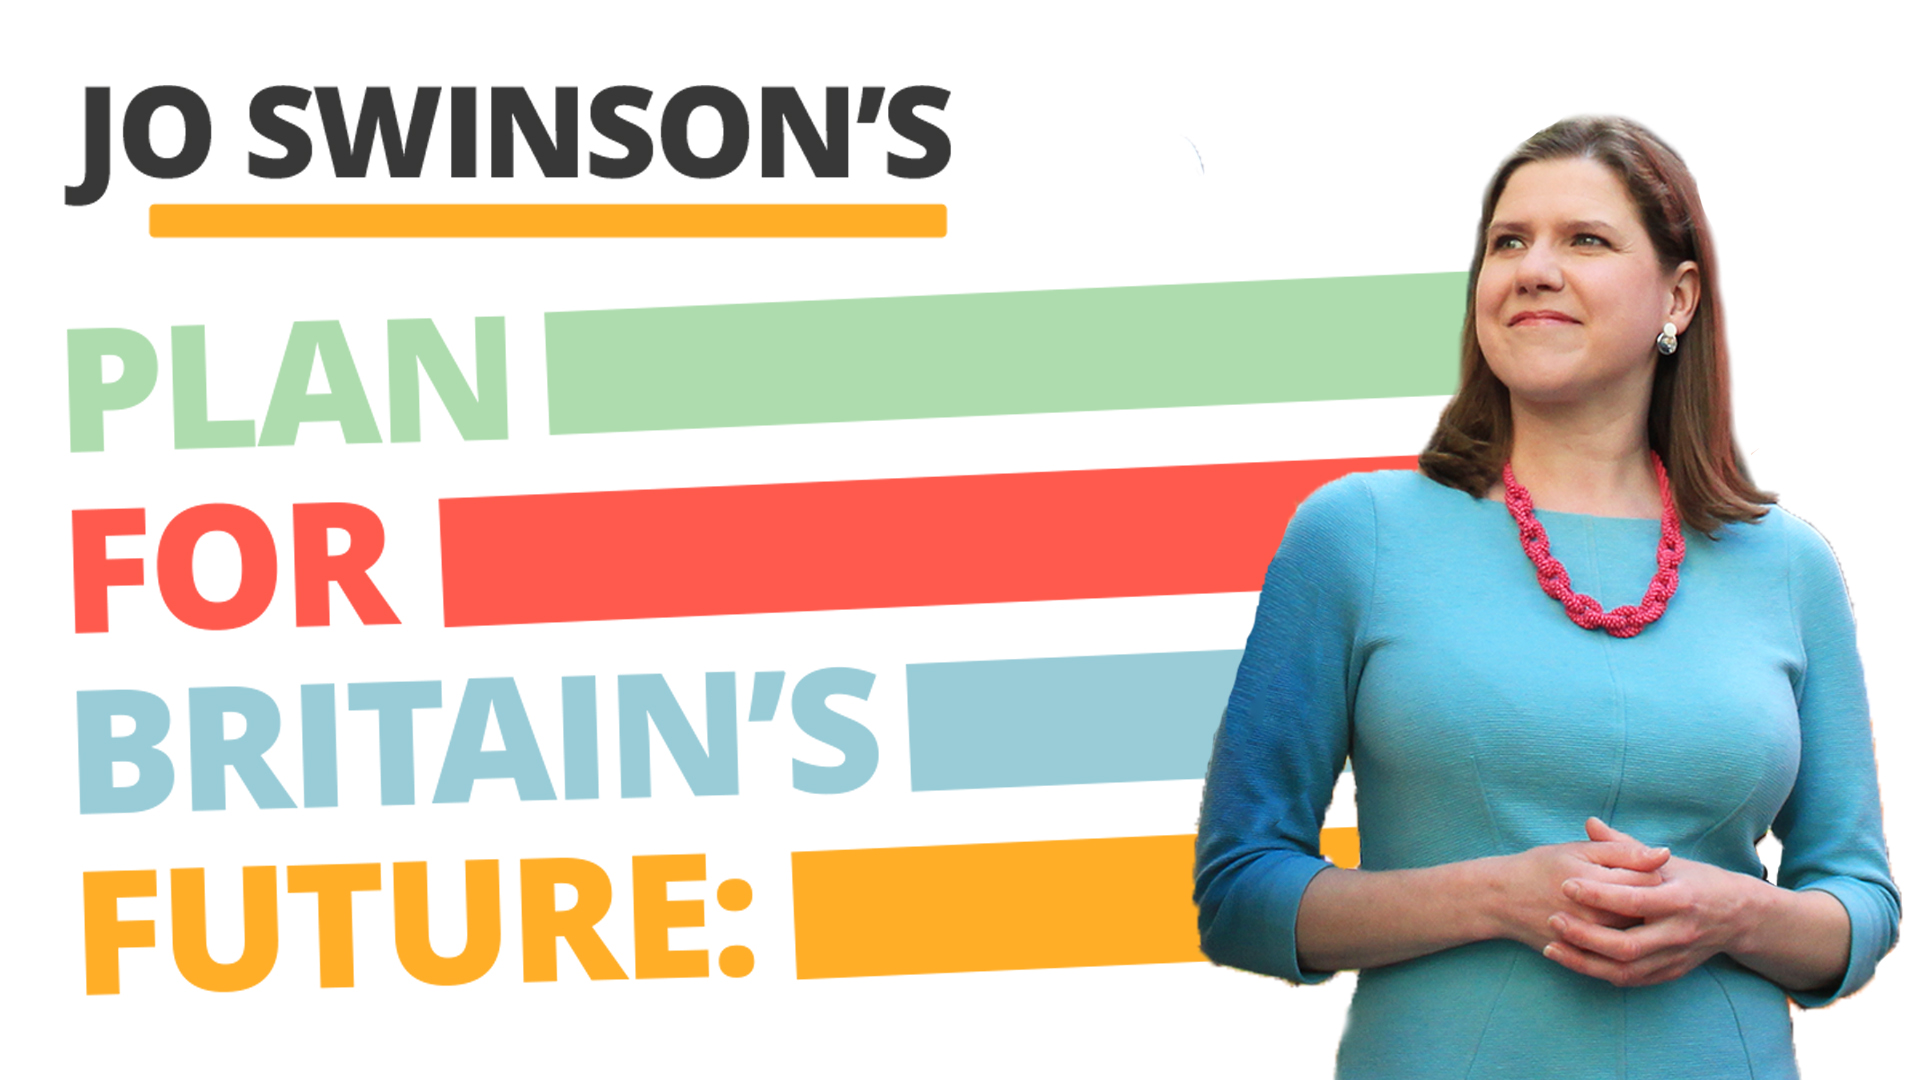 Jo Swinson's Plan for Britain's Future